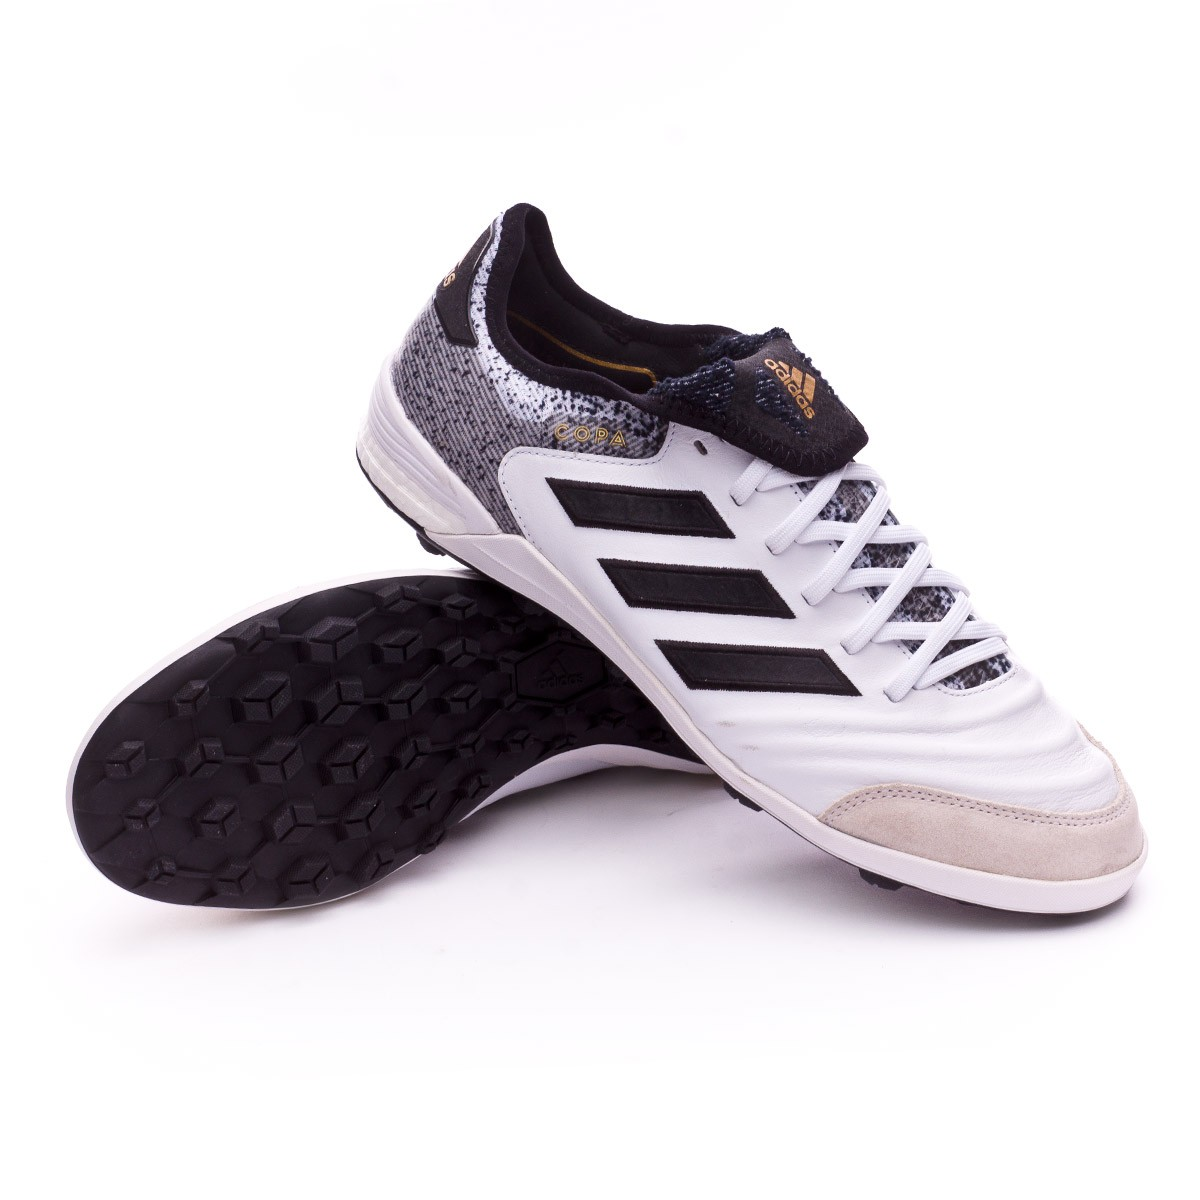 9243163b51f adidas Copa Tango 18.1 Turf Football Boot. White-Core black-Tactile gold ...